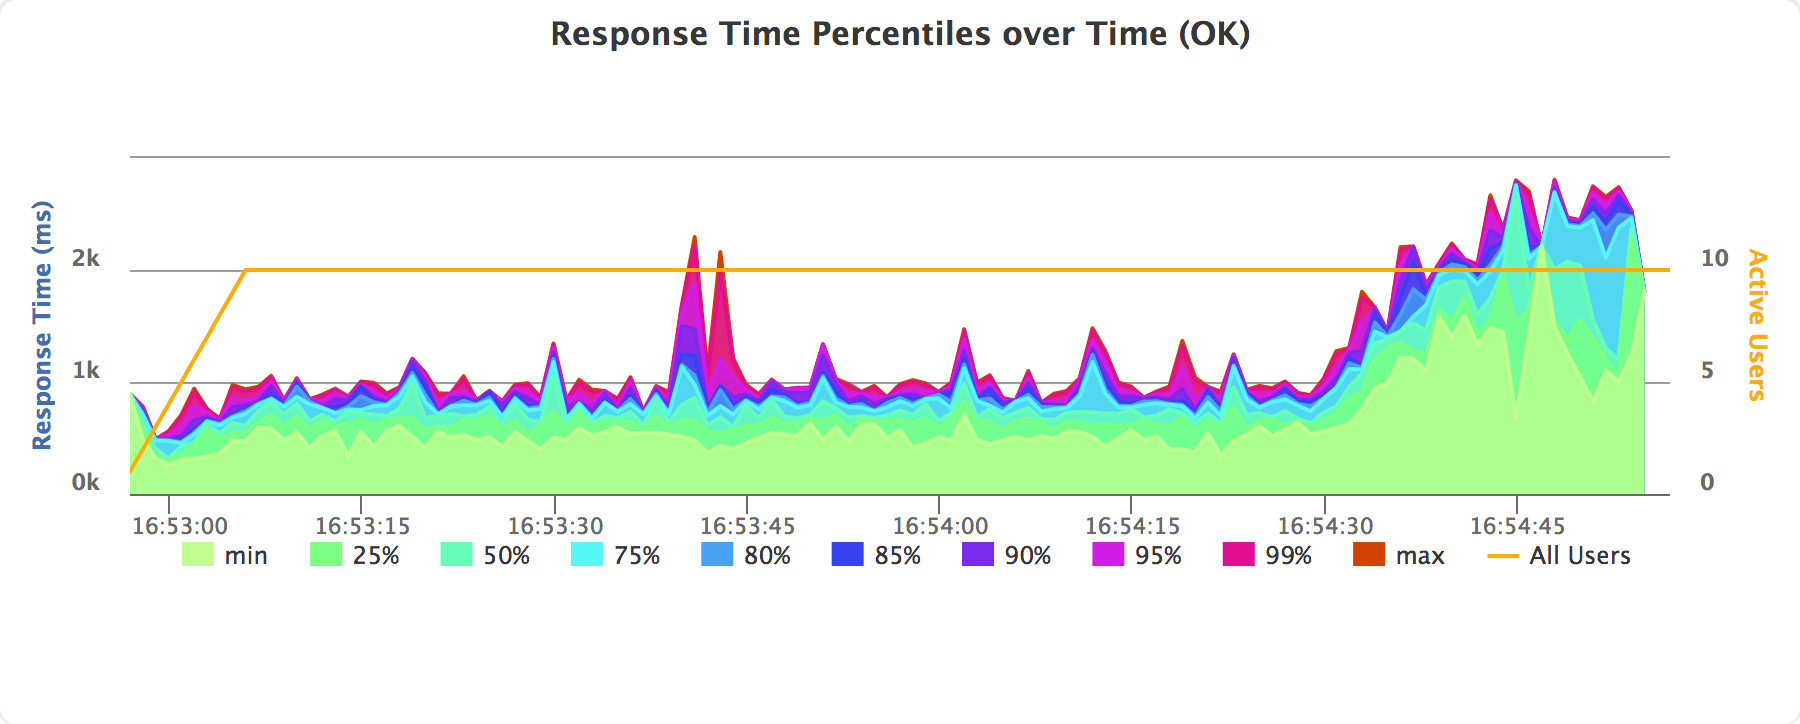 Response Time Percentiles over Time